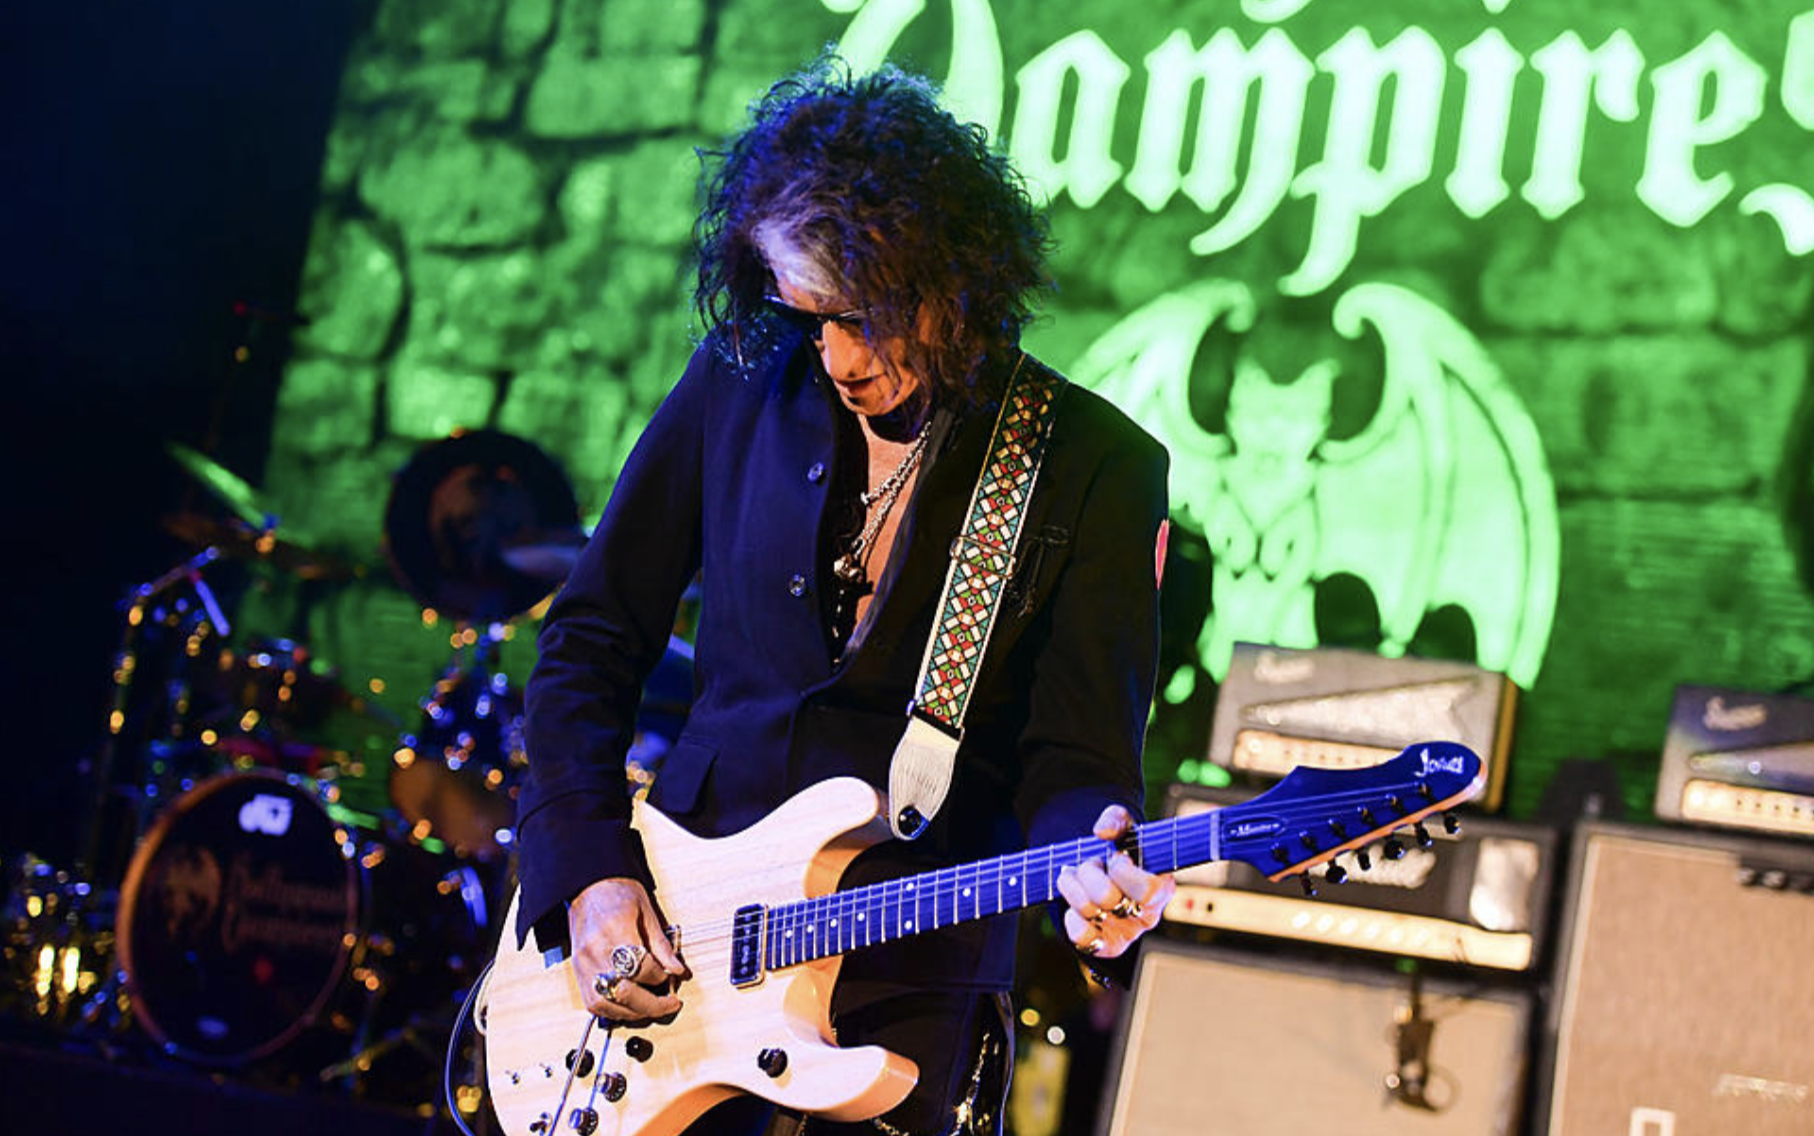 You are currently viewing Aerosmith's Joe Perry: The Complete UCR Interview